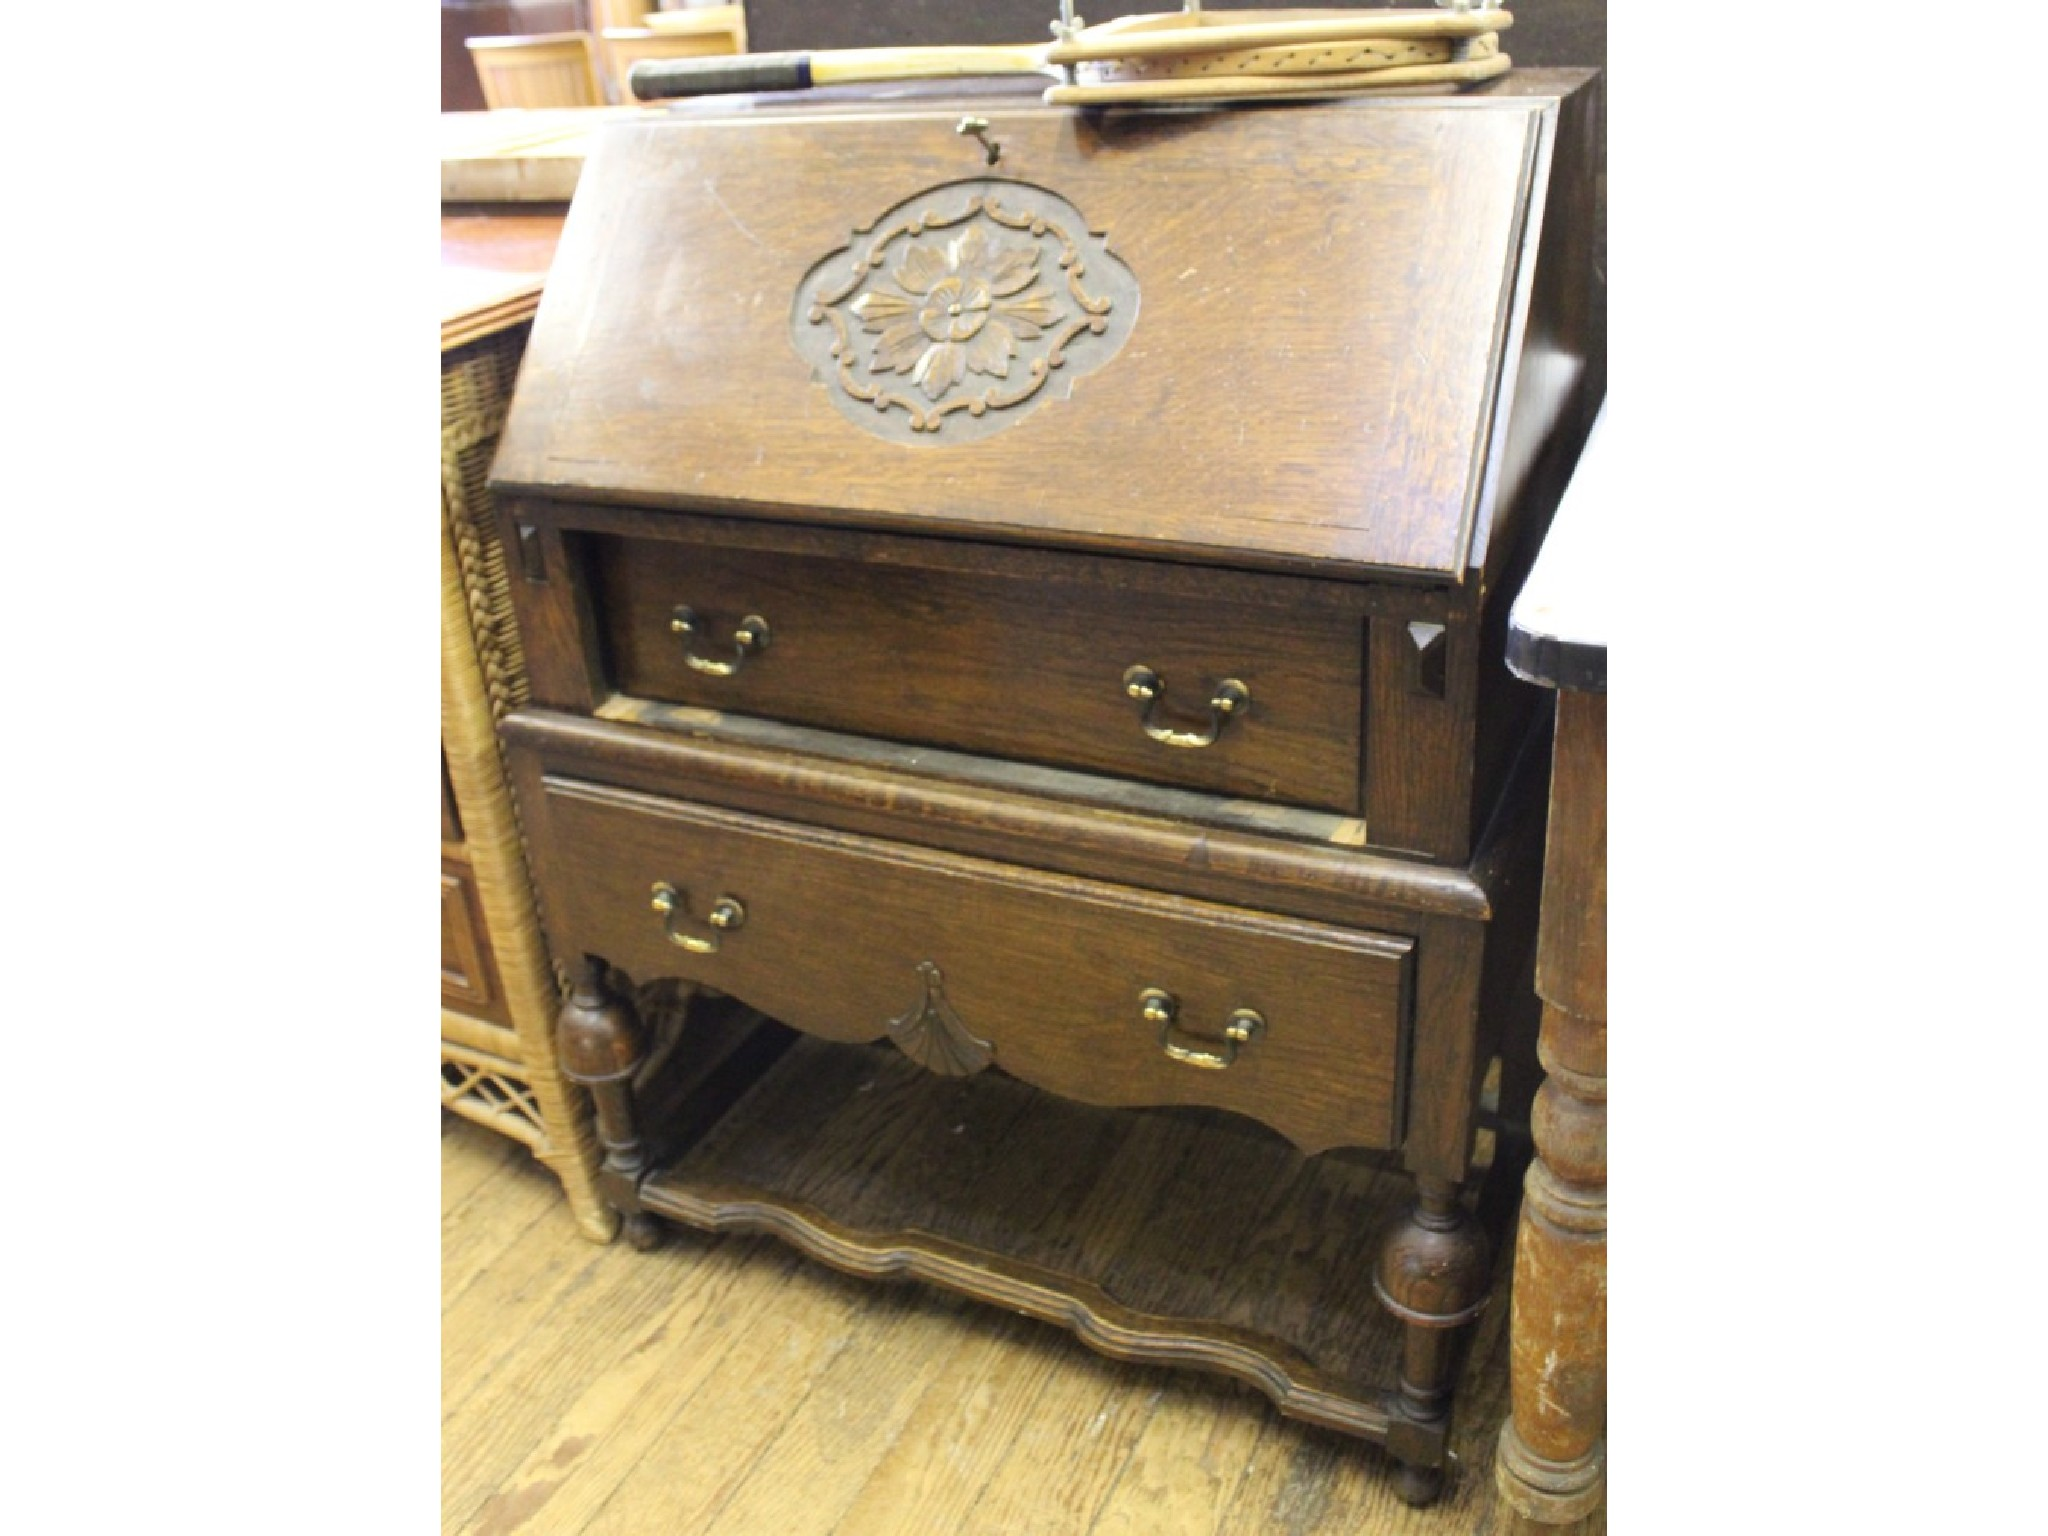 An oak bureau with carved slope, two drawers and turned legs with stretchers, and two painted bedside tables